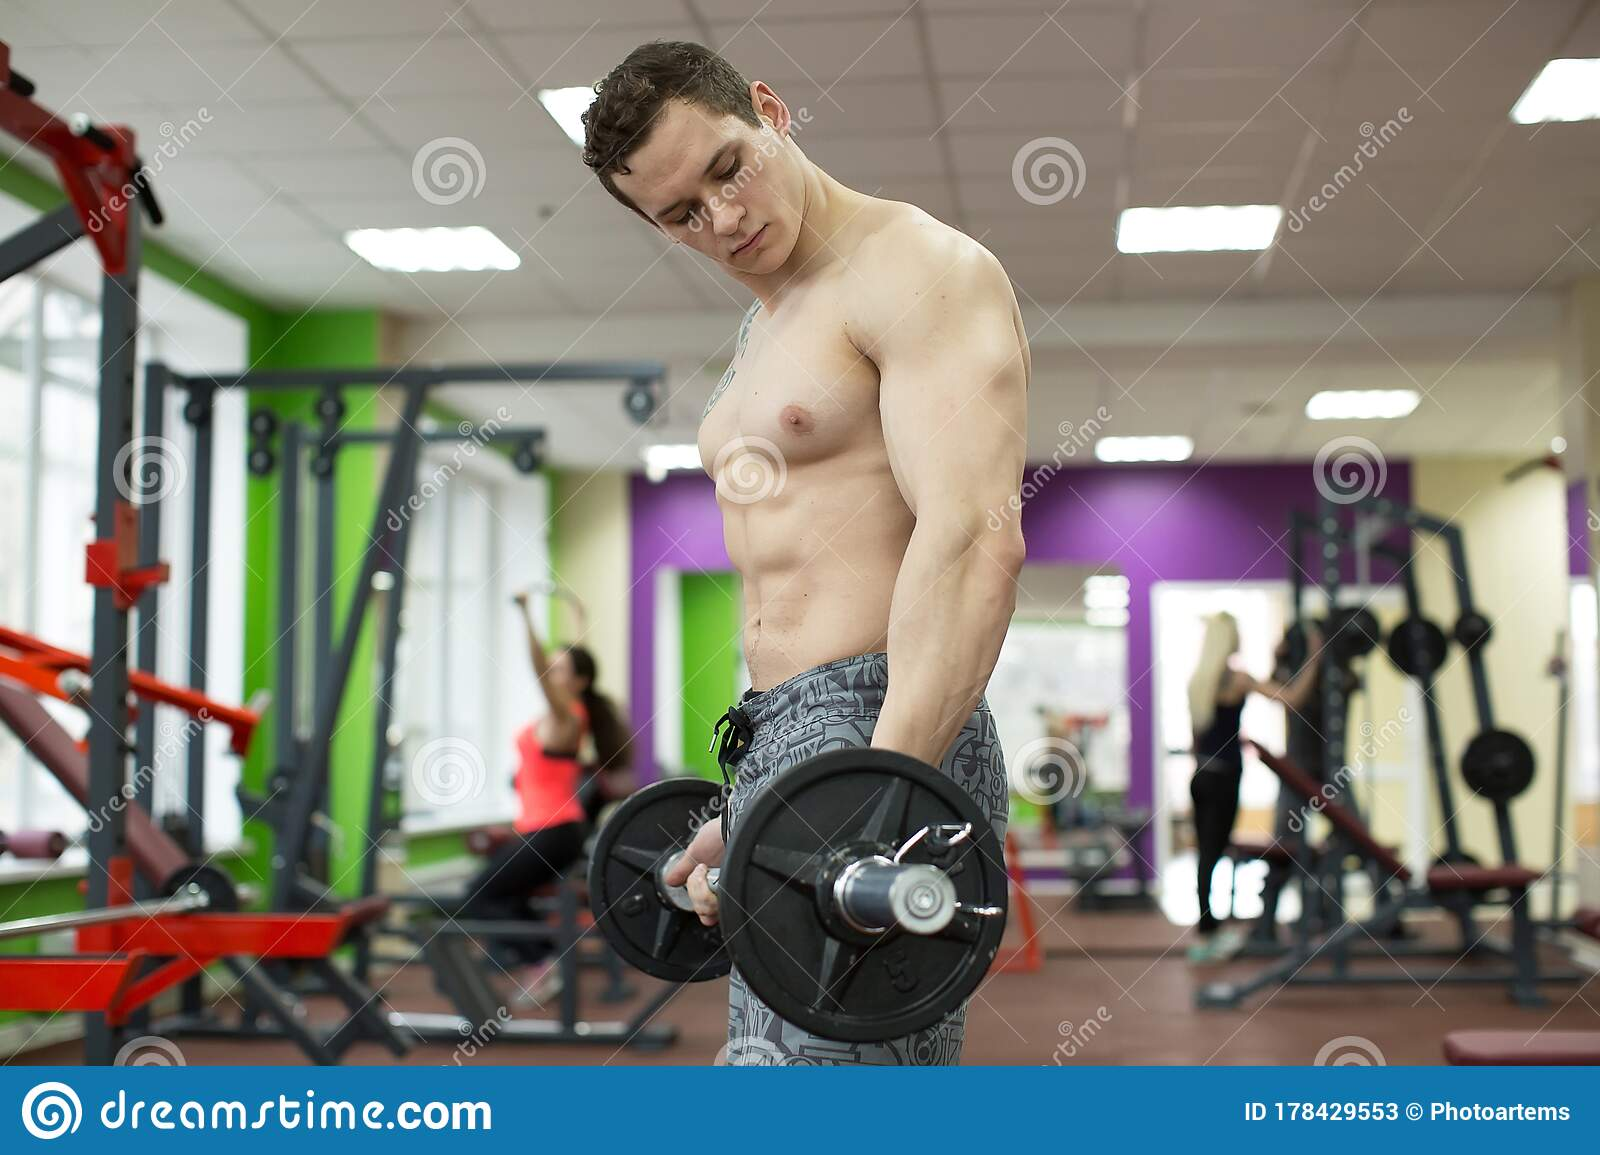 Muscular Man In Gym Abs Working Out Strong Male Naked